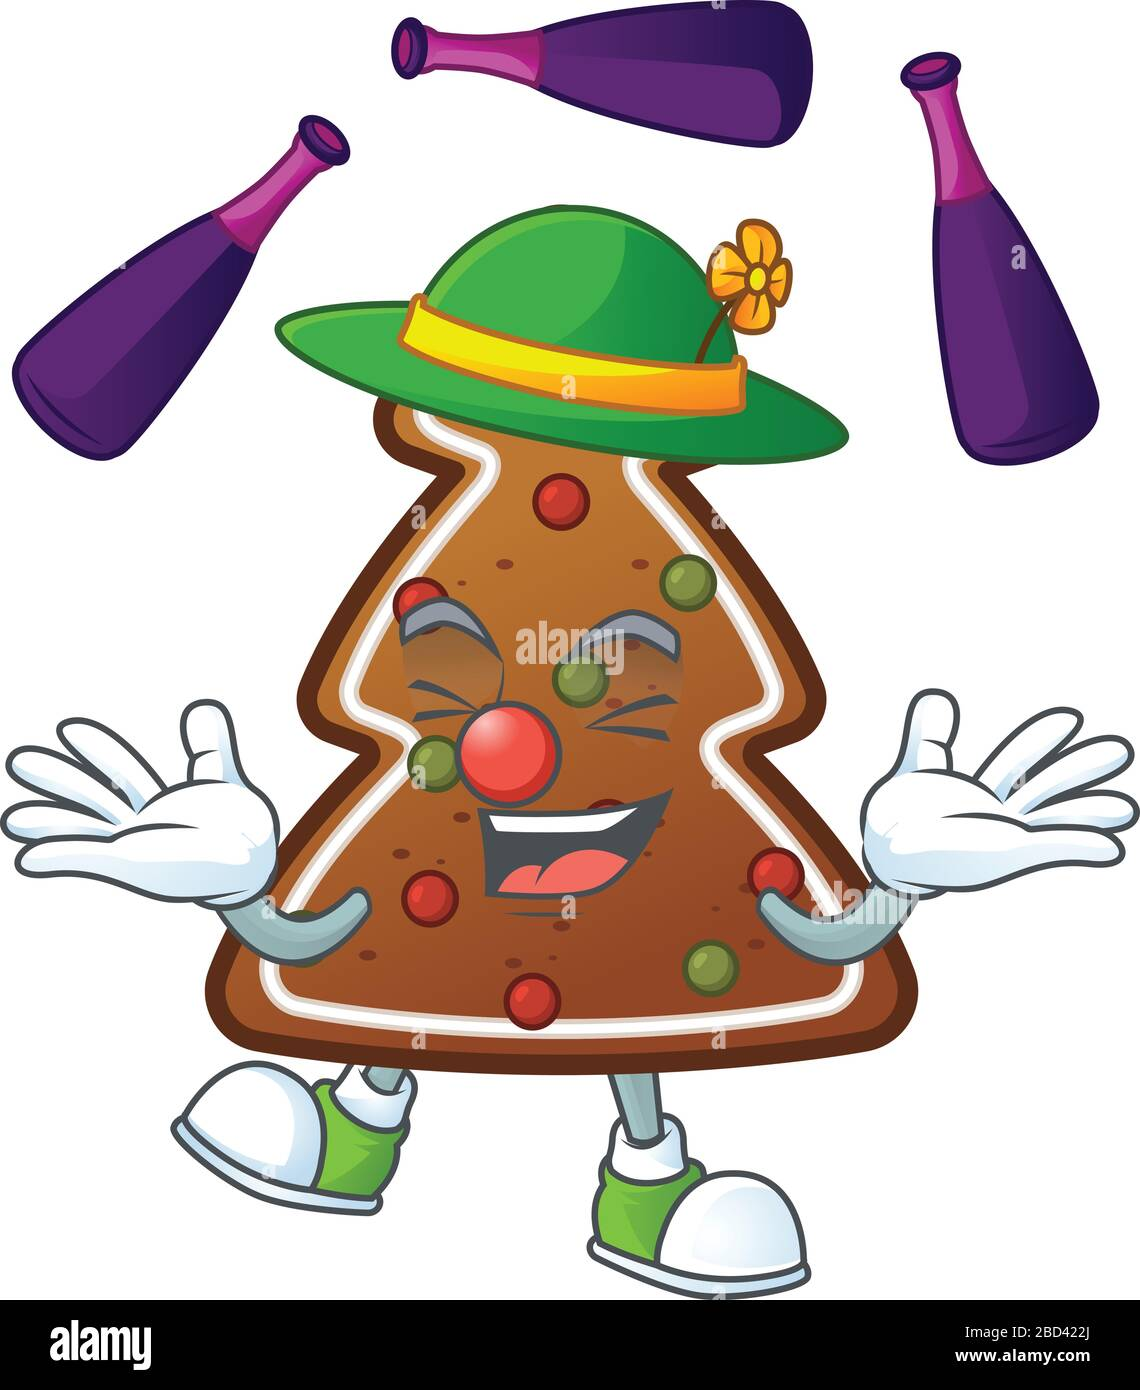 Mascot Cartoon Style Of Gingerbread Tree Playing Juggling On Stage Stock Vector Image Art Alamy Find & download free graphic resources for cartoon mascot. alamy